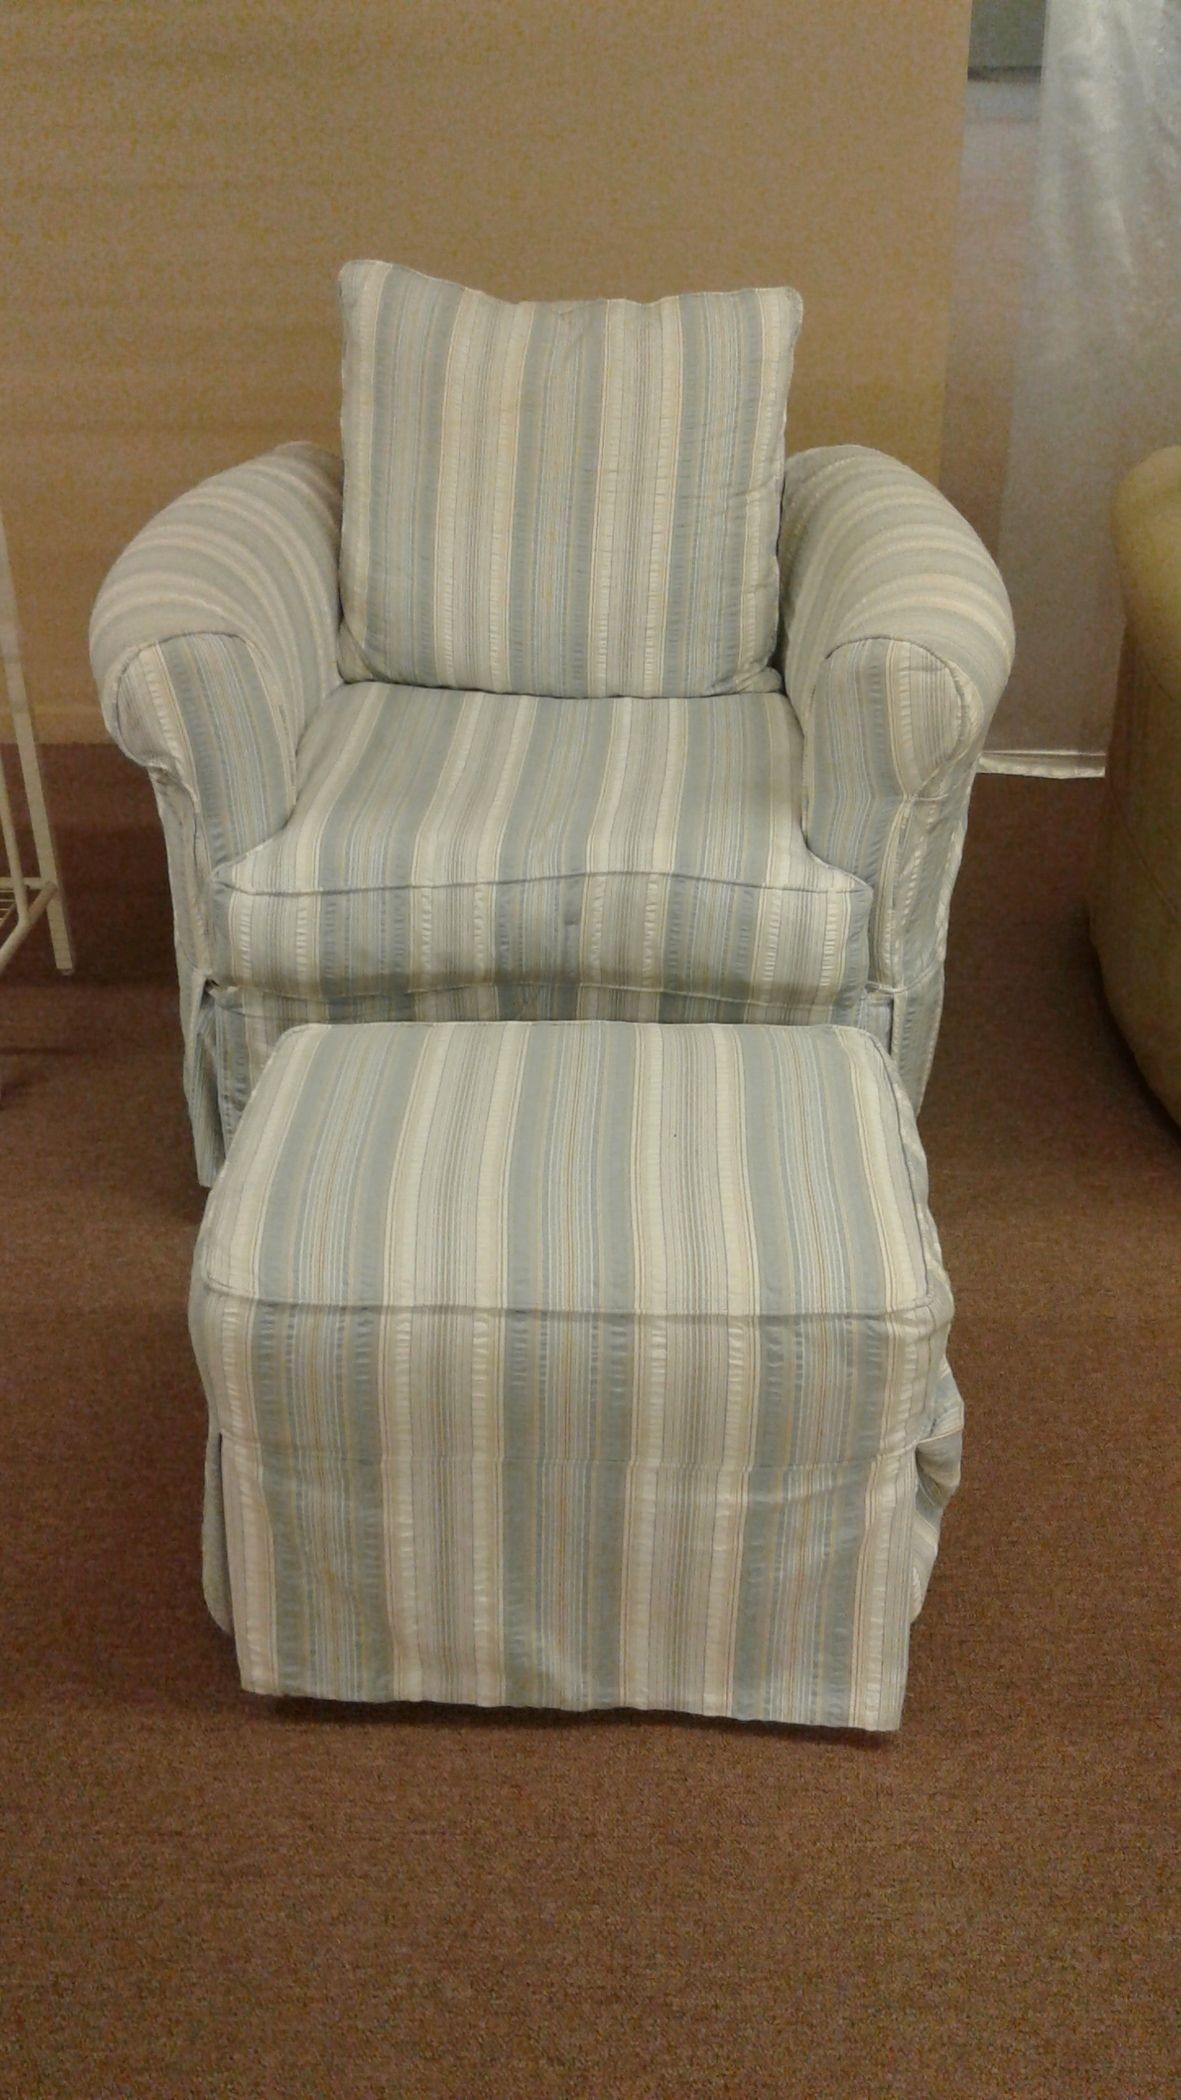 Four Seasons Chair Amp Ottoman Delmarva Furniture Consignment